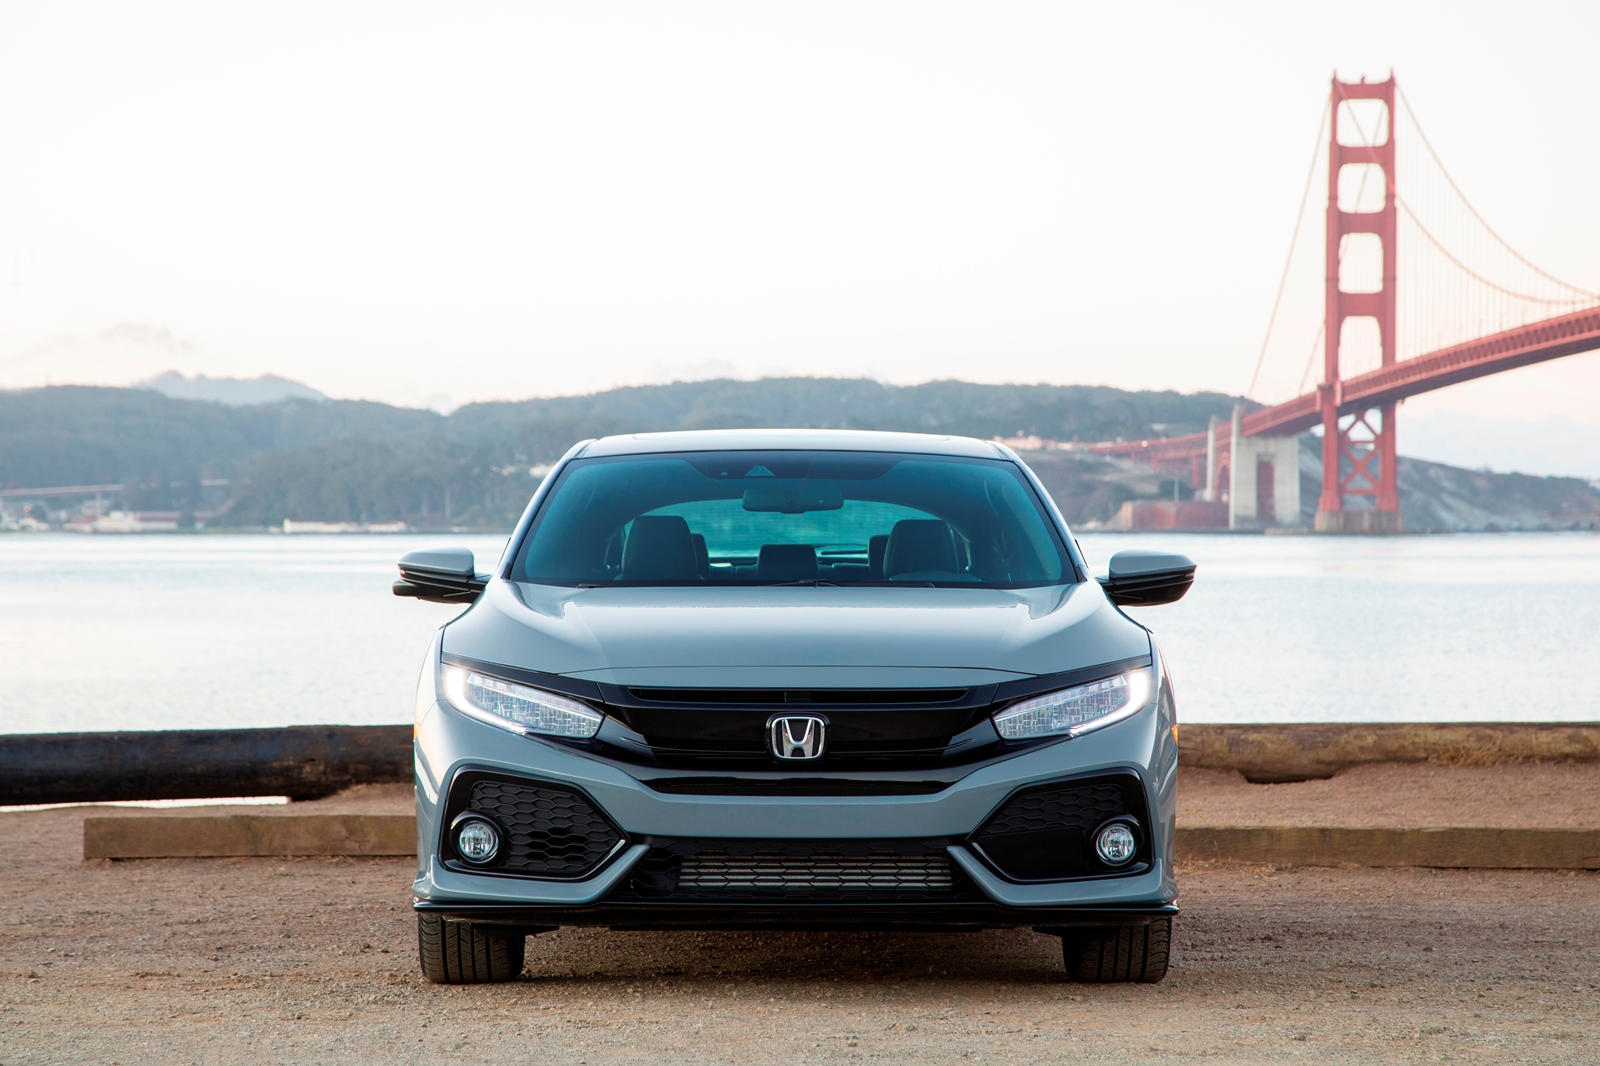 2020 Honda Civic Hatchback Front View